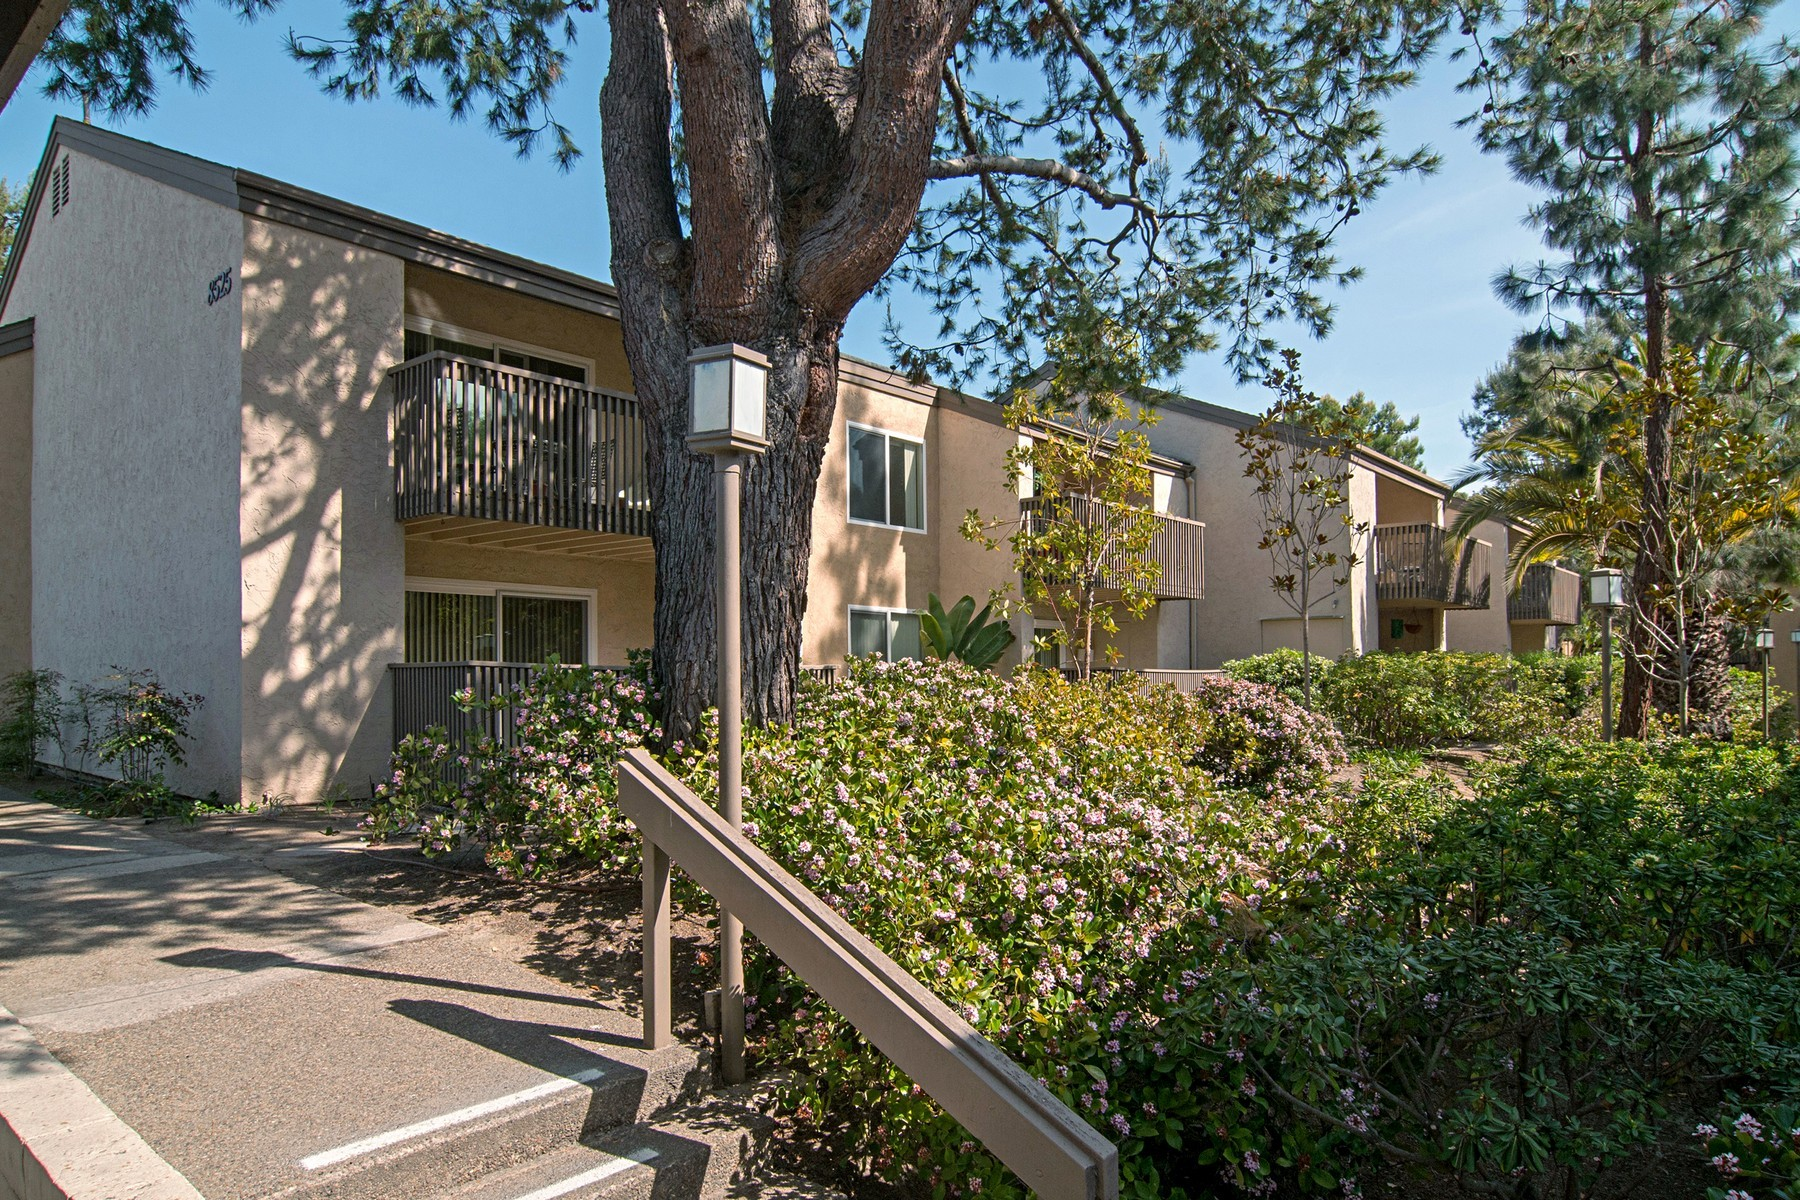 8525 villa la jolla dr h san diego ca 92037 1 bedroom - One bedroom condos for sale in san diego ...